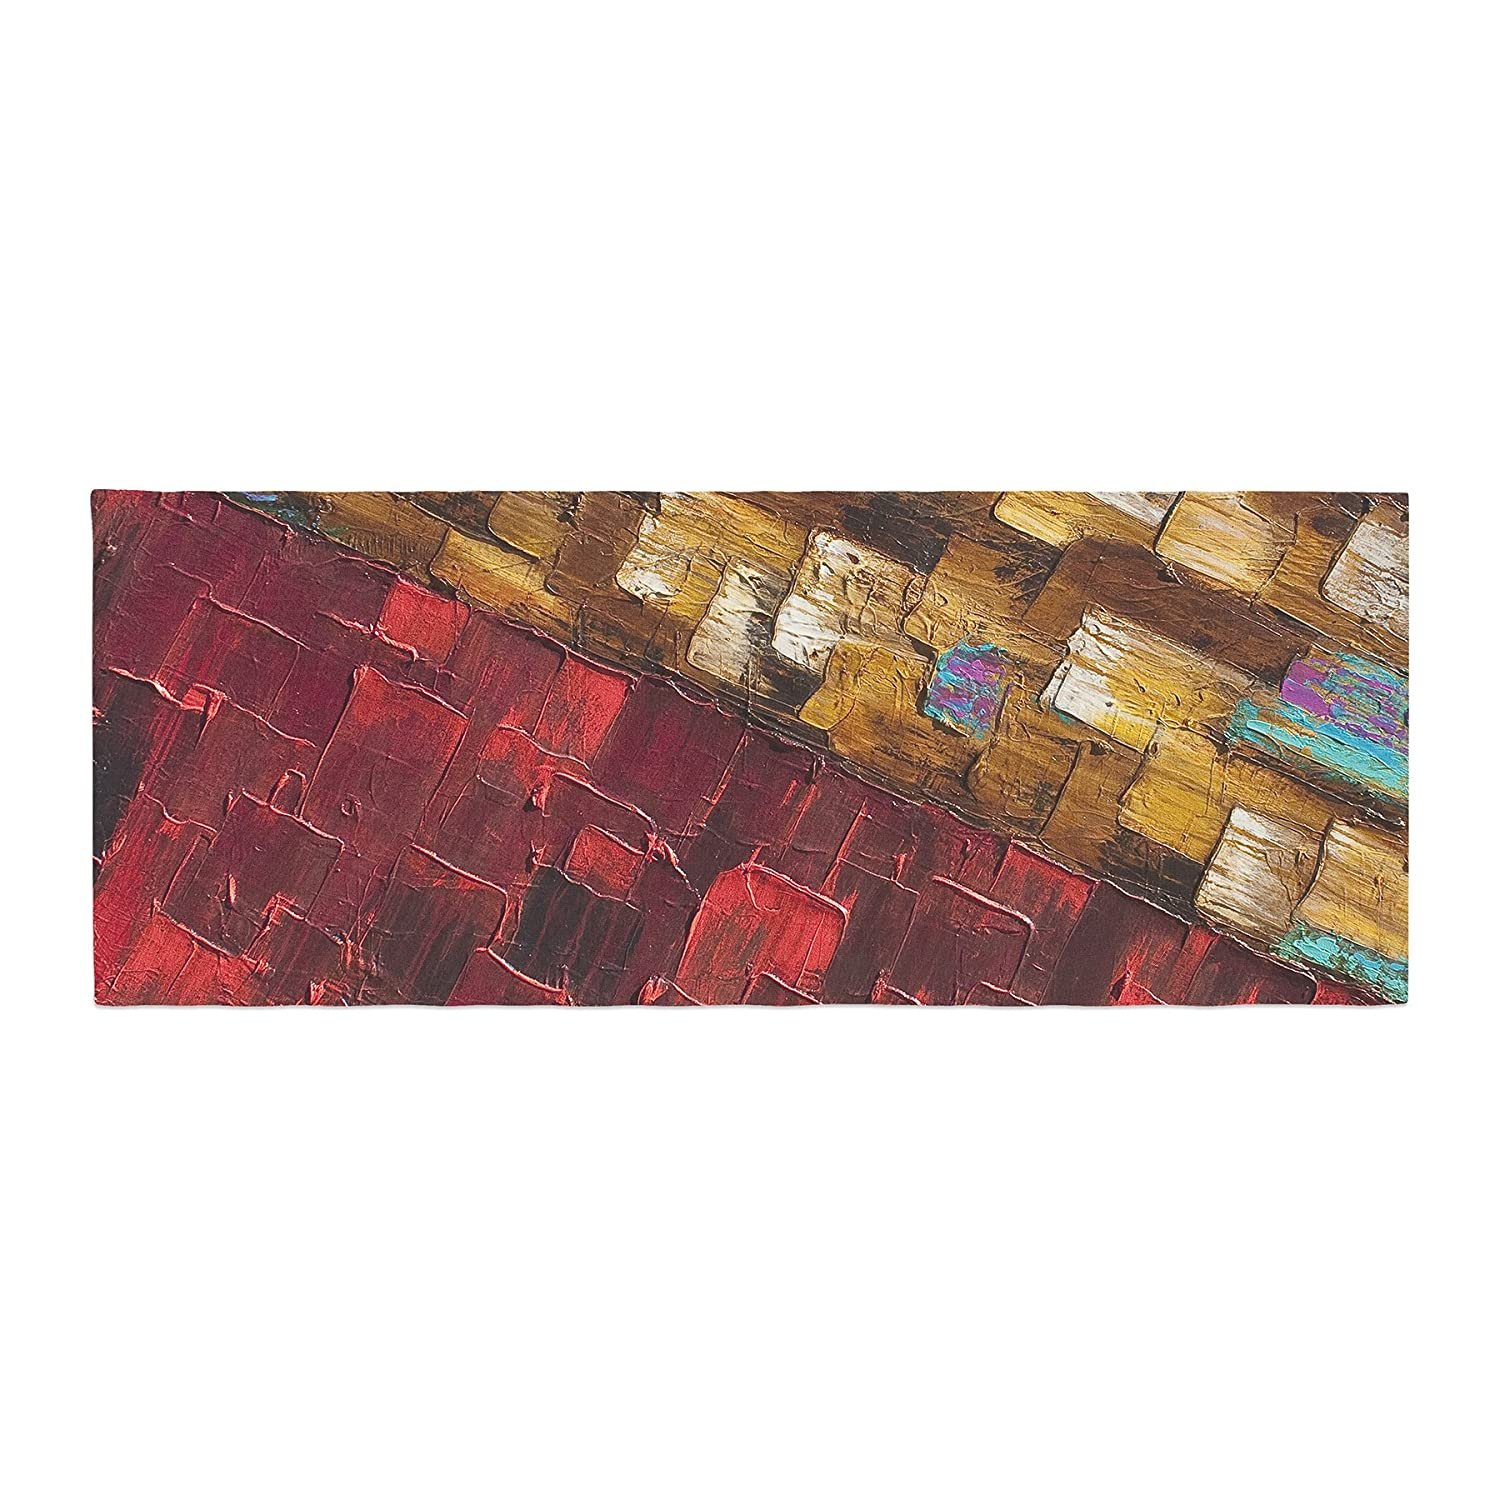 Kess InHouse SD1020ABR01 Steven Dix Movement Beneath Red Gold Bed Runner, 34 X 86, 34 X 86